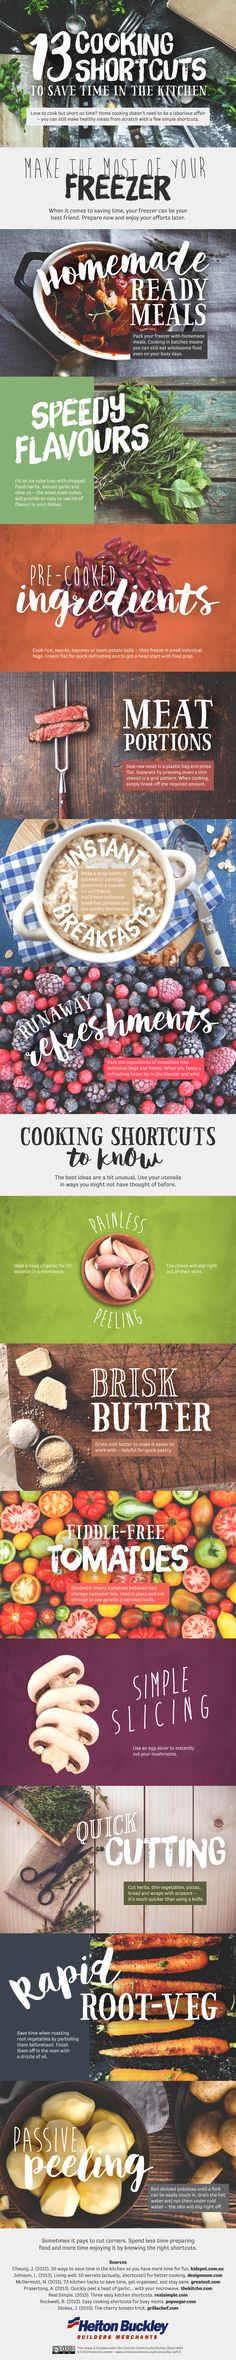 13-cooking-shortcuts-to-save-time-in-the-kitchen